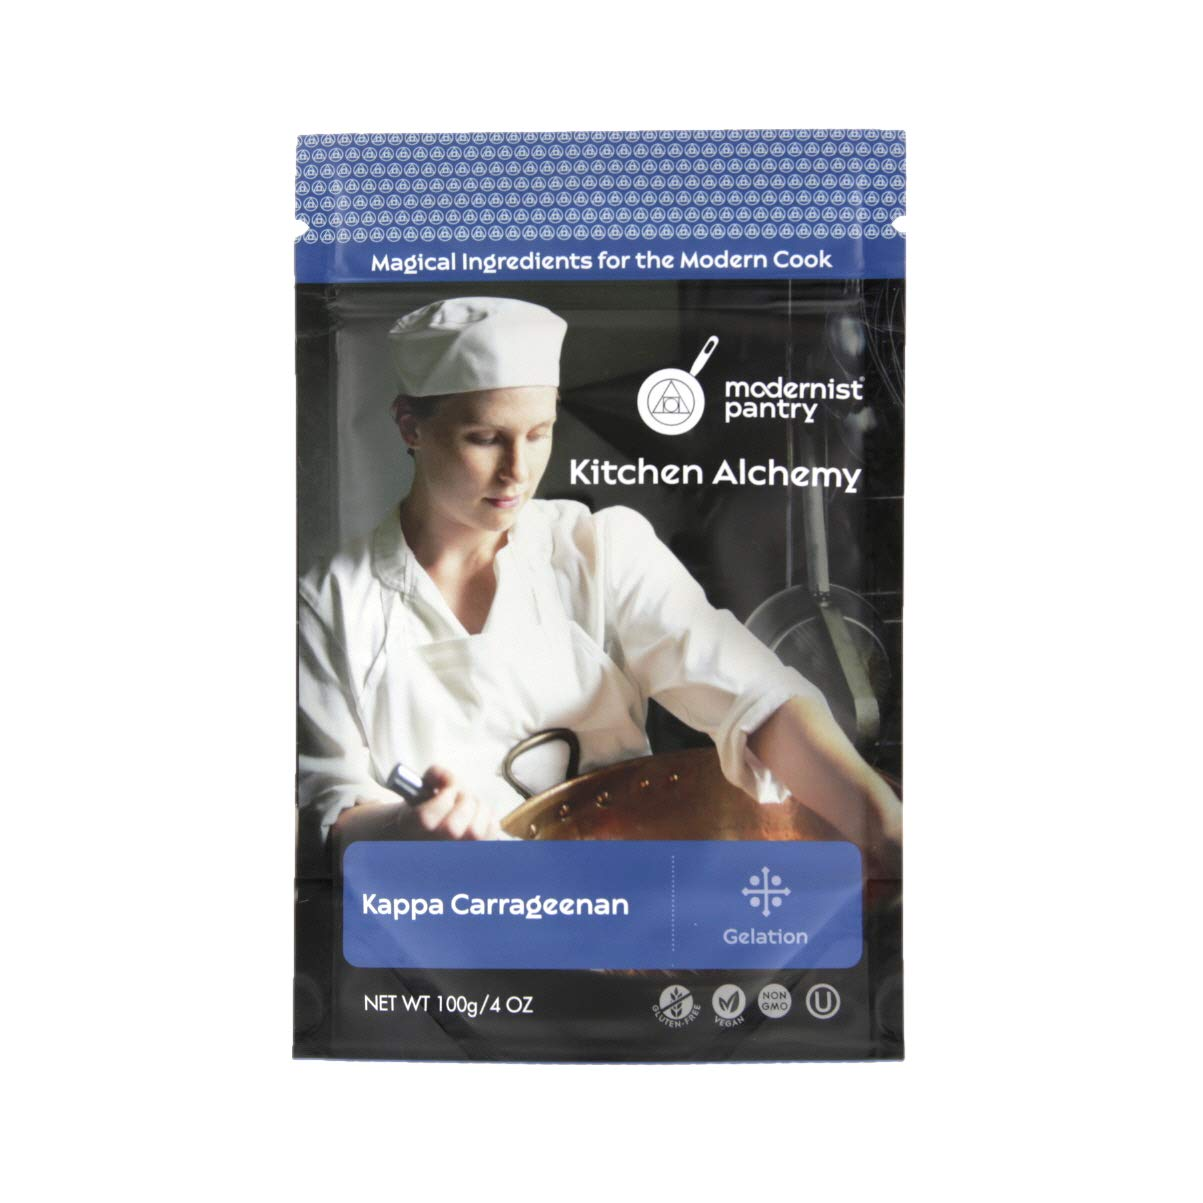 Pure Refined Kappa Carrageenan ⊘ Non-GMO ☮ Vegan ✡ OU Kosher Certified - 100g/4oz (The original recommended for Vegan Cheese)